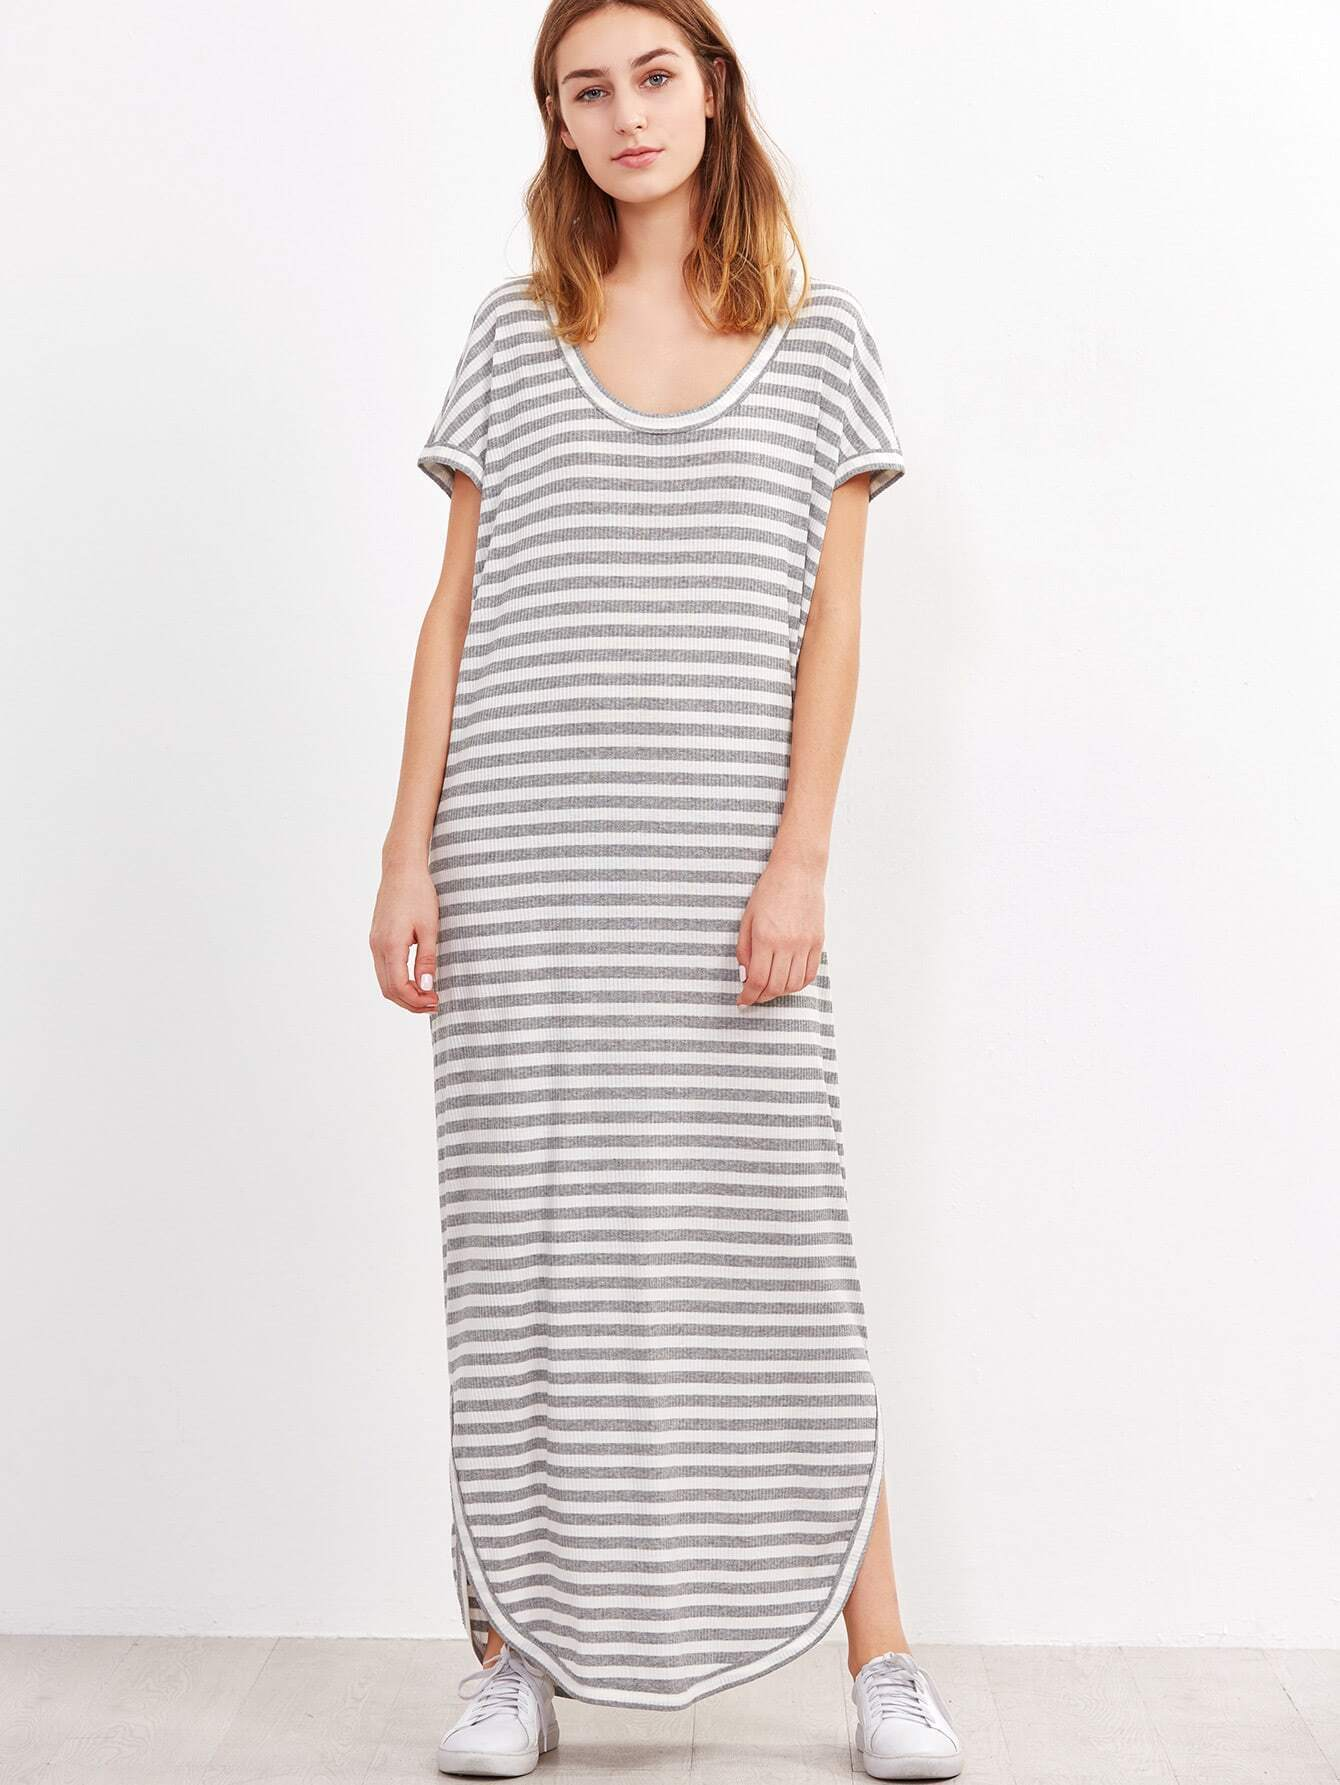 http://us.shein.com/Grey-And-White-Striped-Curved-Hem-Ribbed-Dress-p-322555-cat-1727.html?aff_id=4021